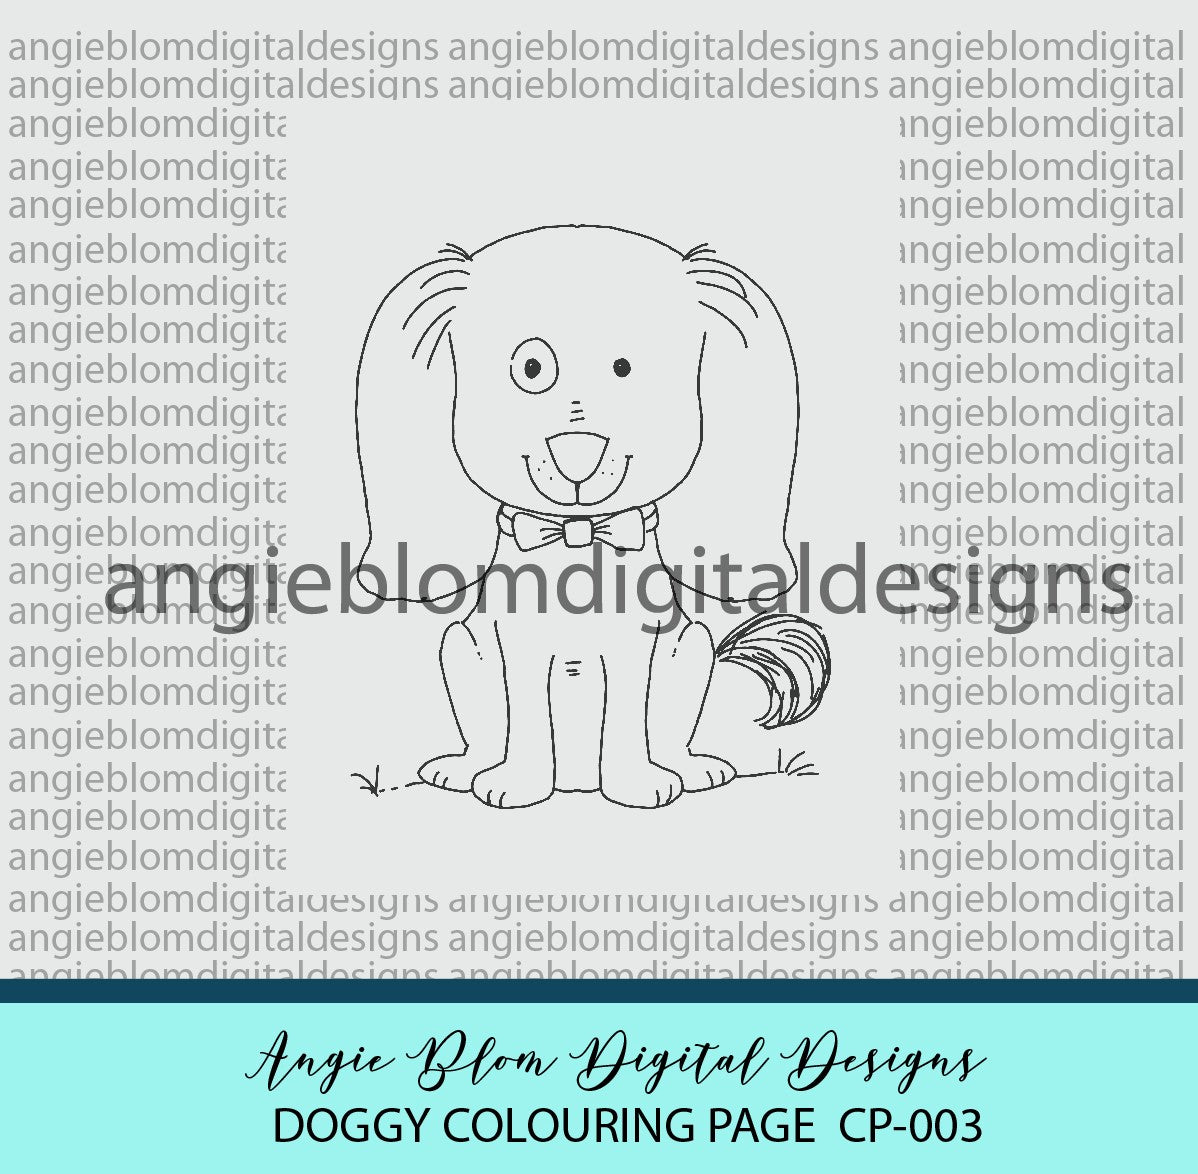 Doggy Colouring Page